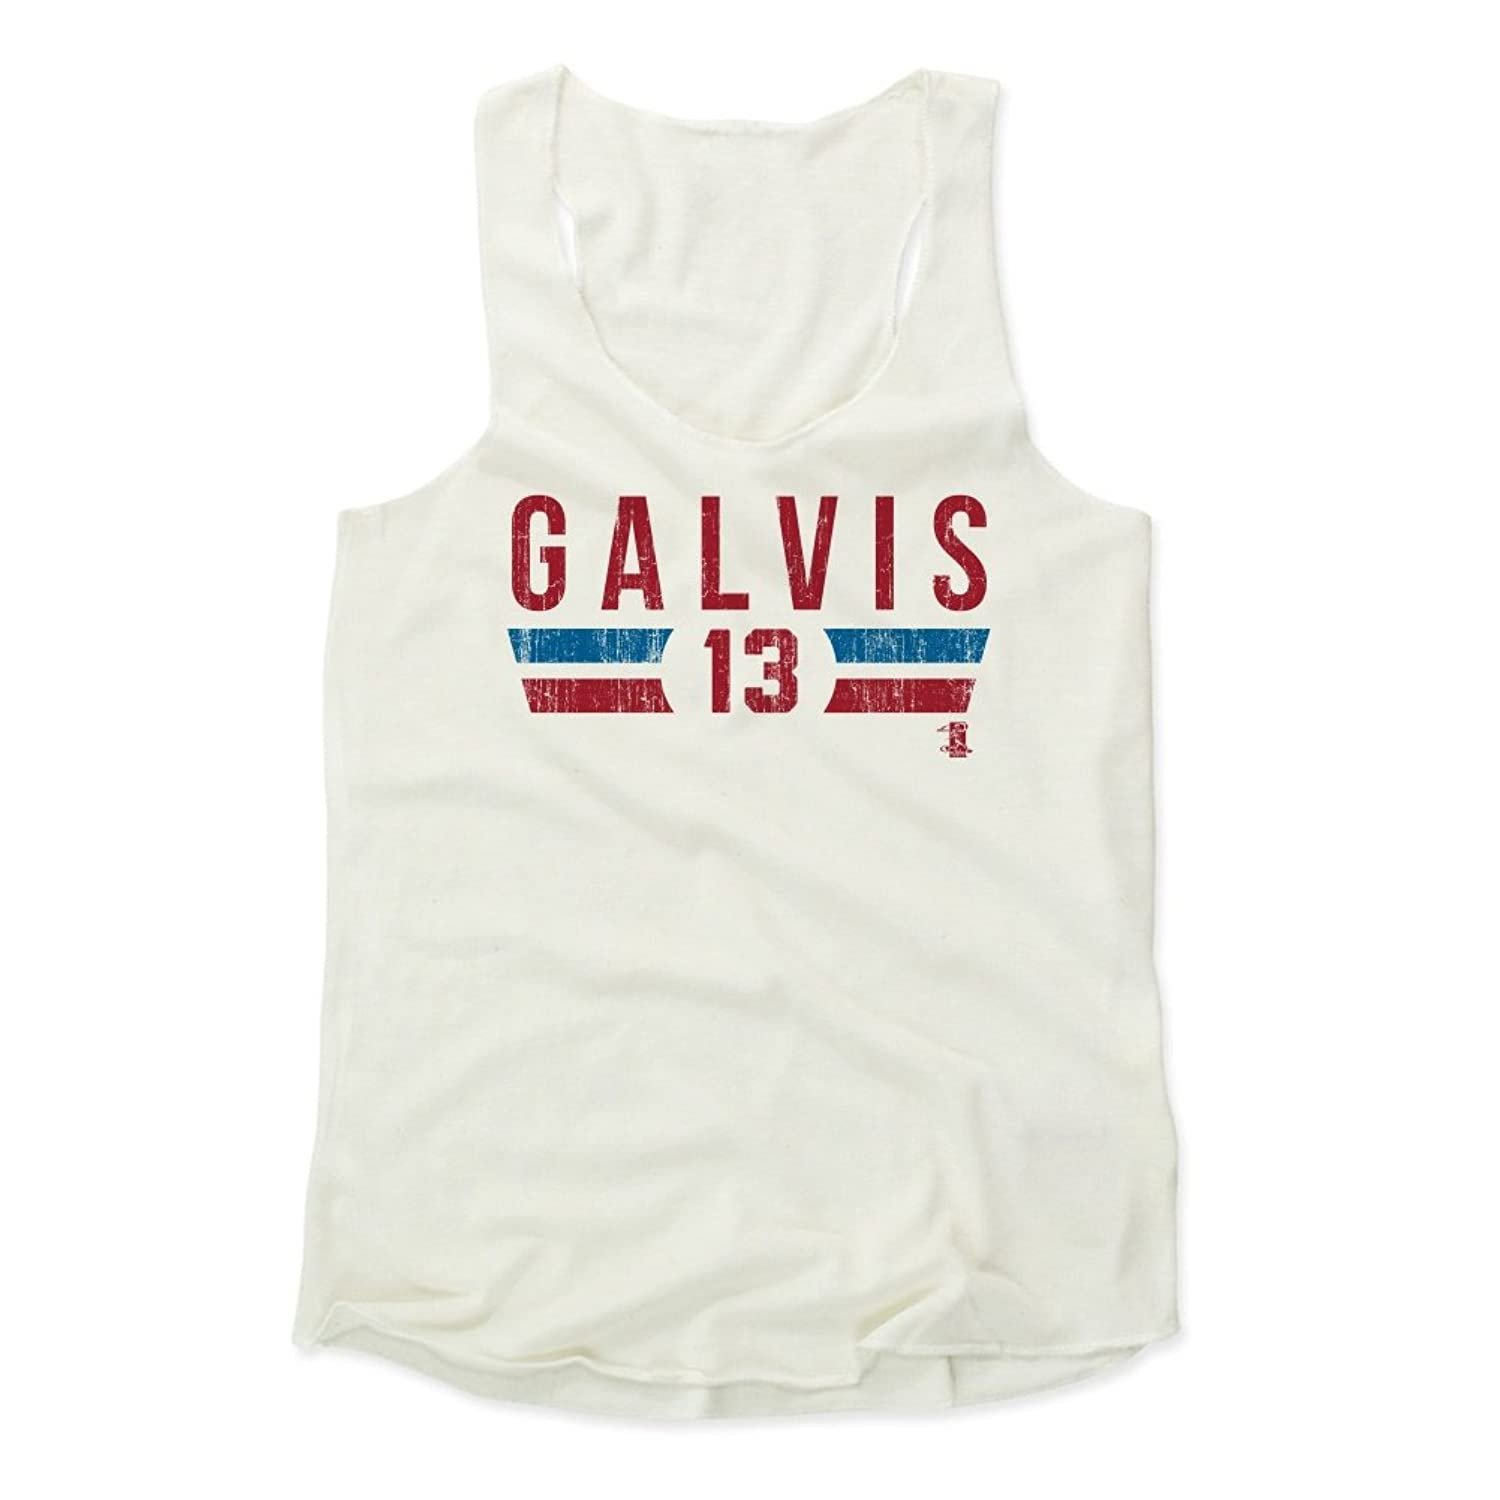 Freddy Galvis Font RB Philadelphia Women's Tank Top